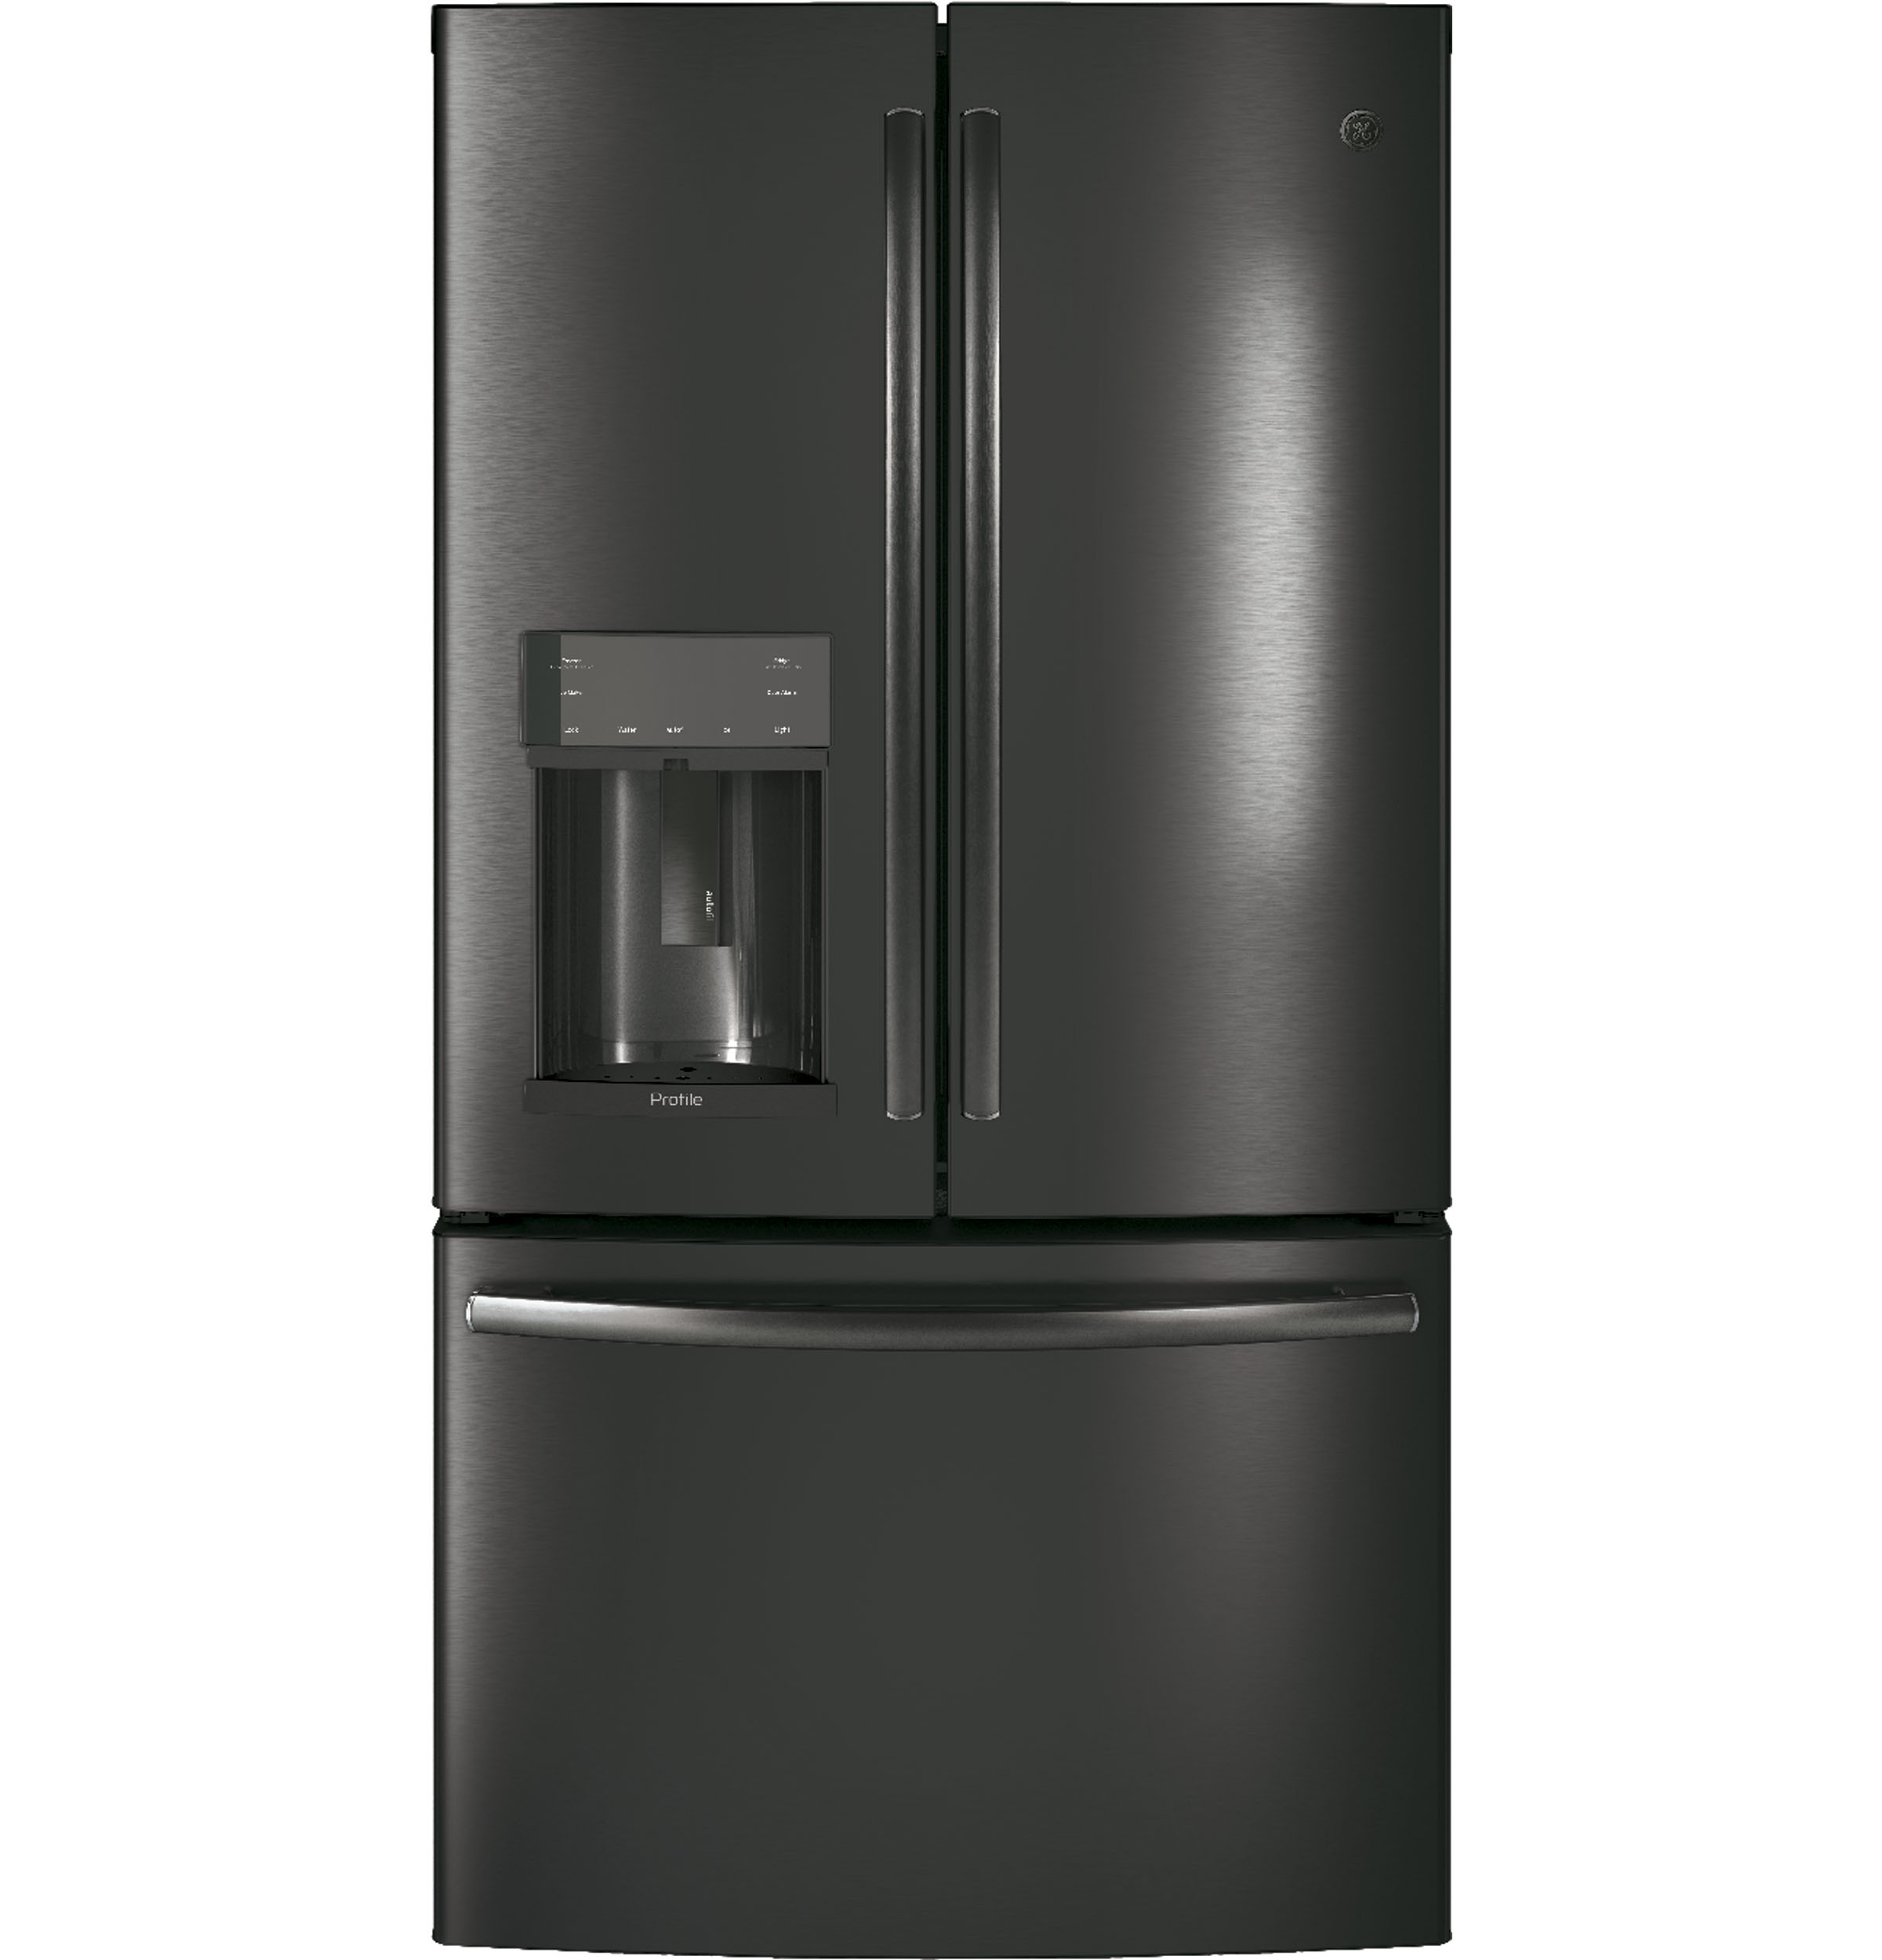 Profile GE Profile™ Series ENERGY STAR® 27.8 Cu. Ft. French-Door Refrigerator with Hands-Free AutoFill